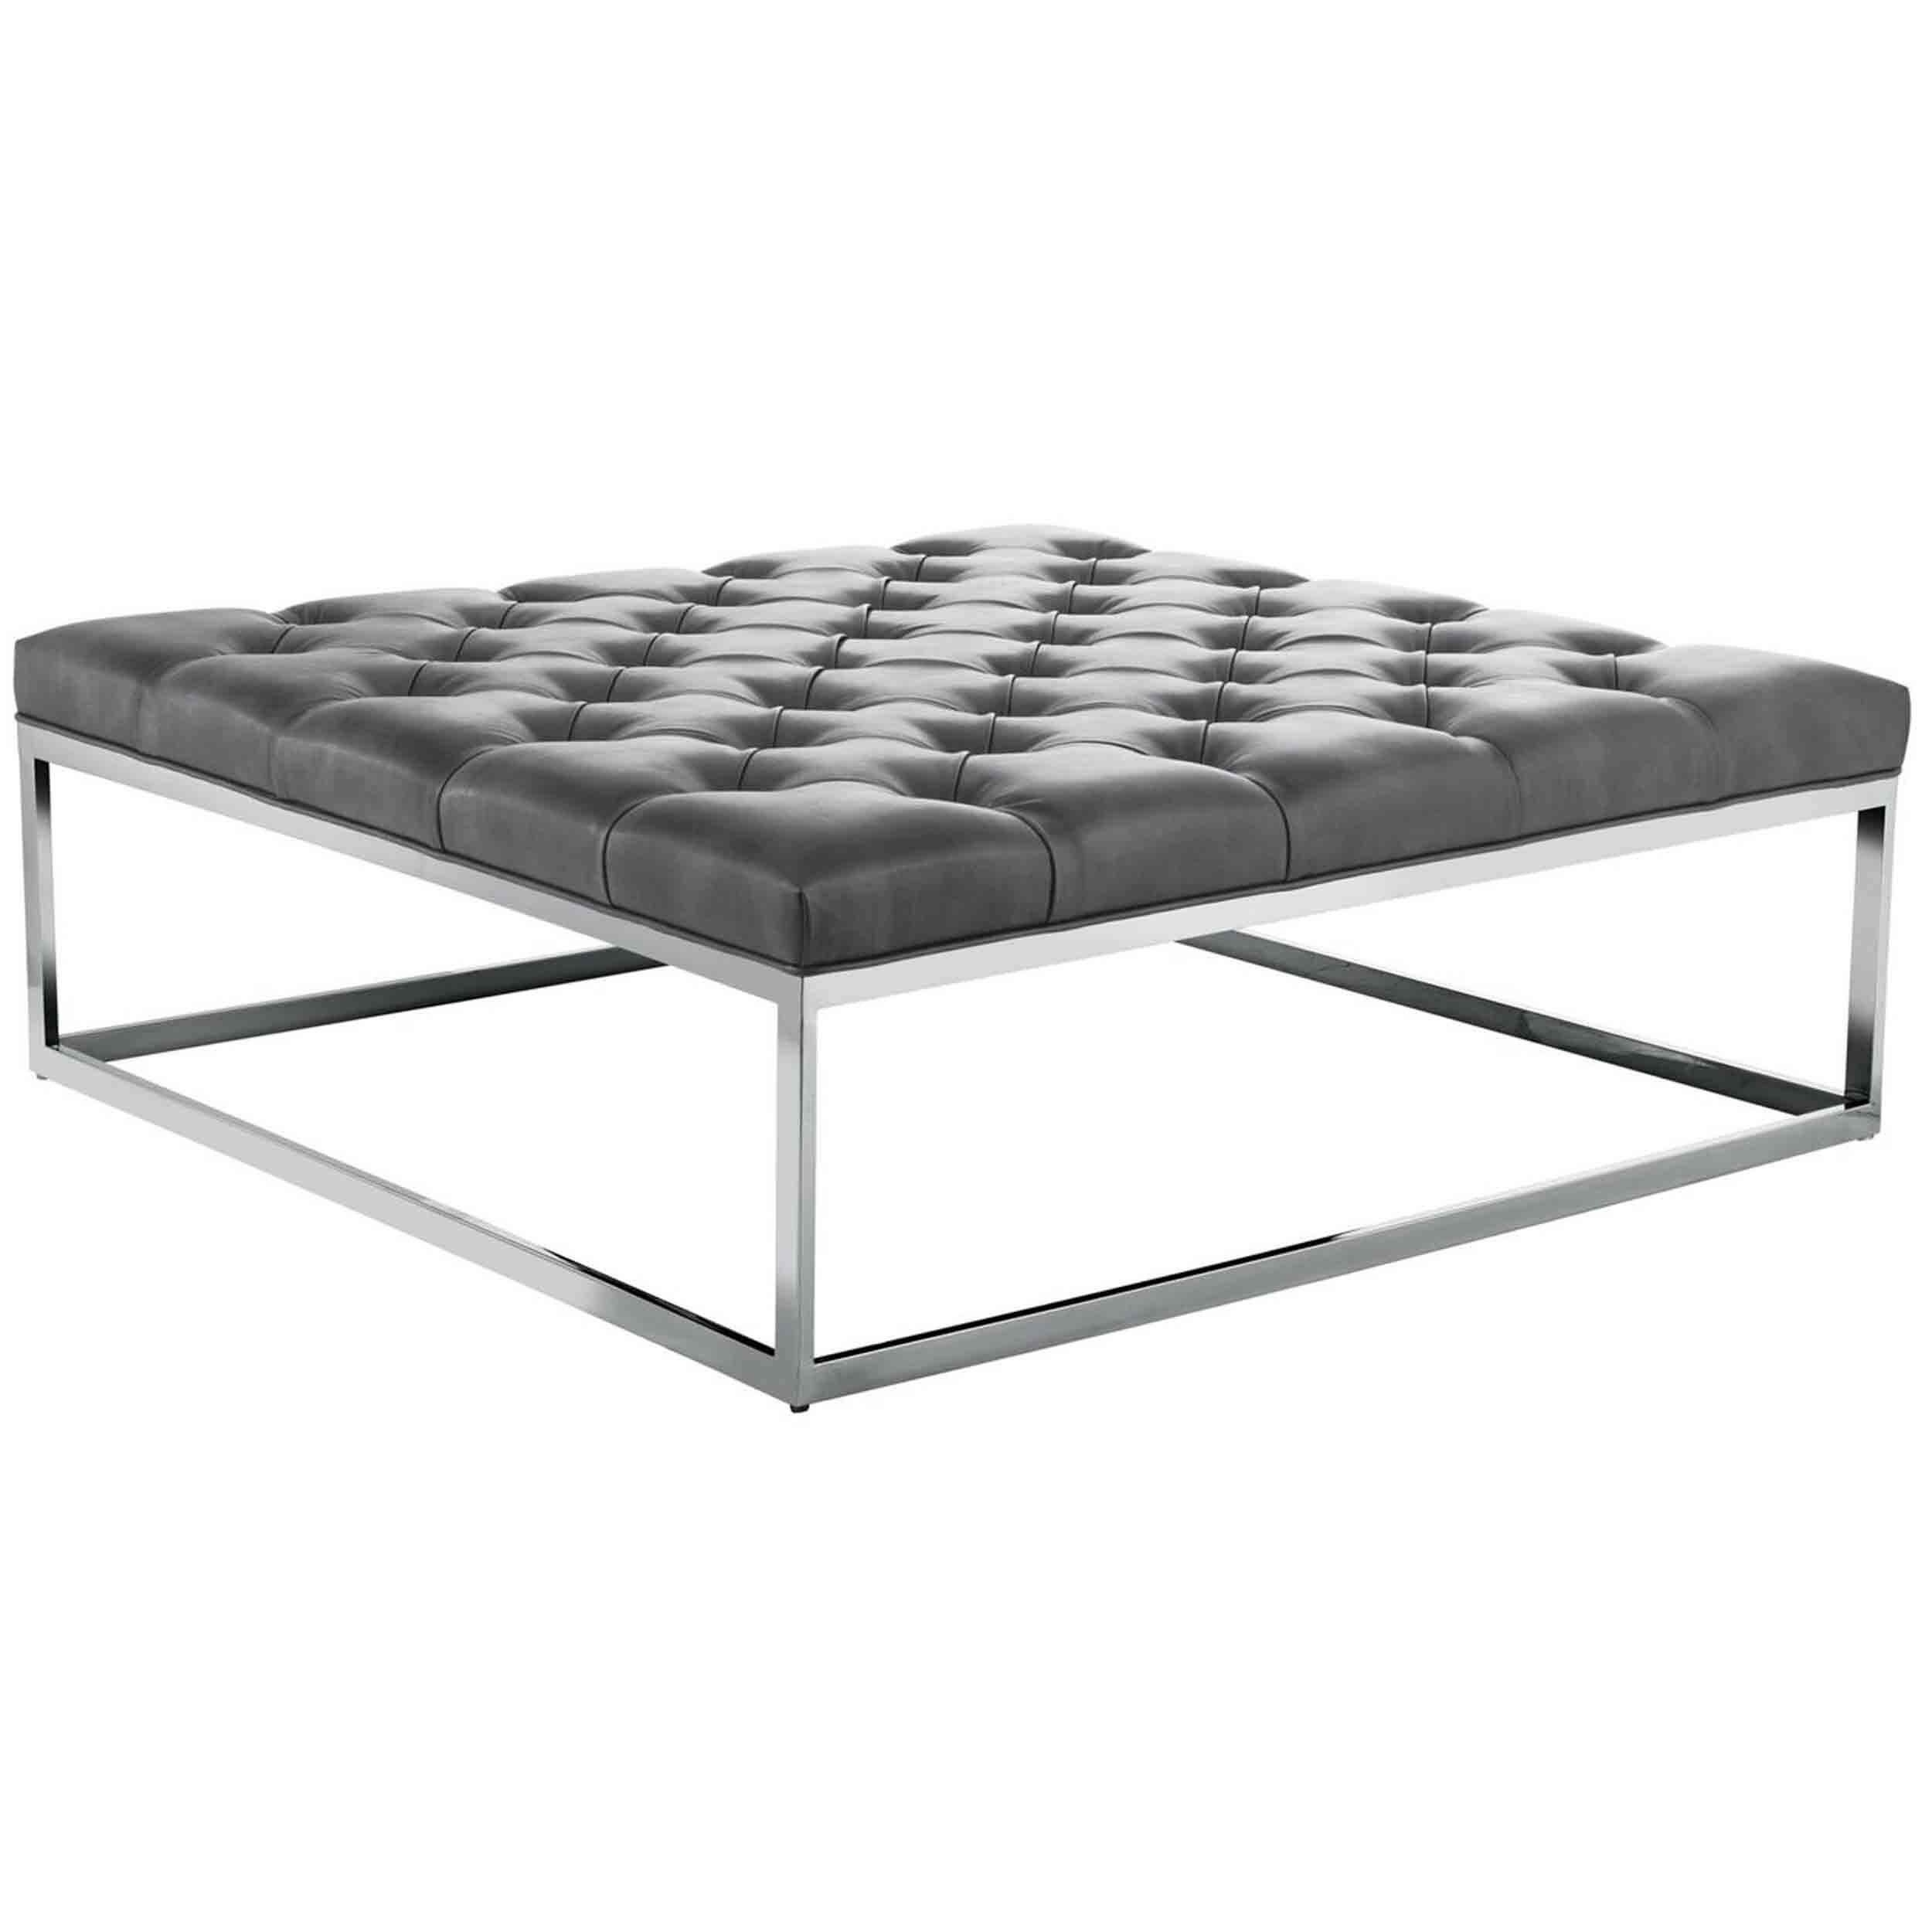 Club Sutton Square Ottoman Large